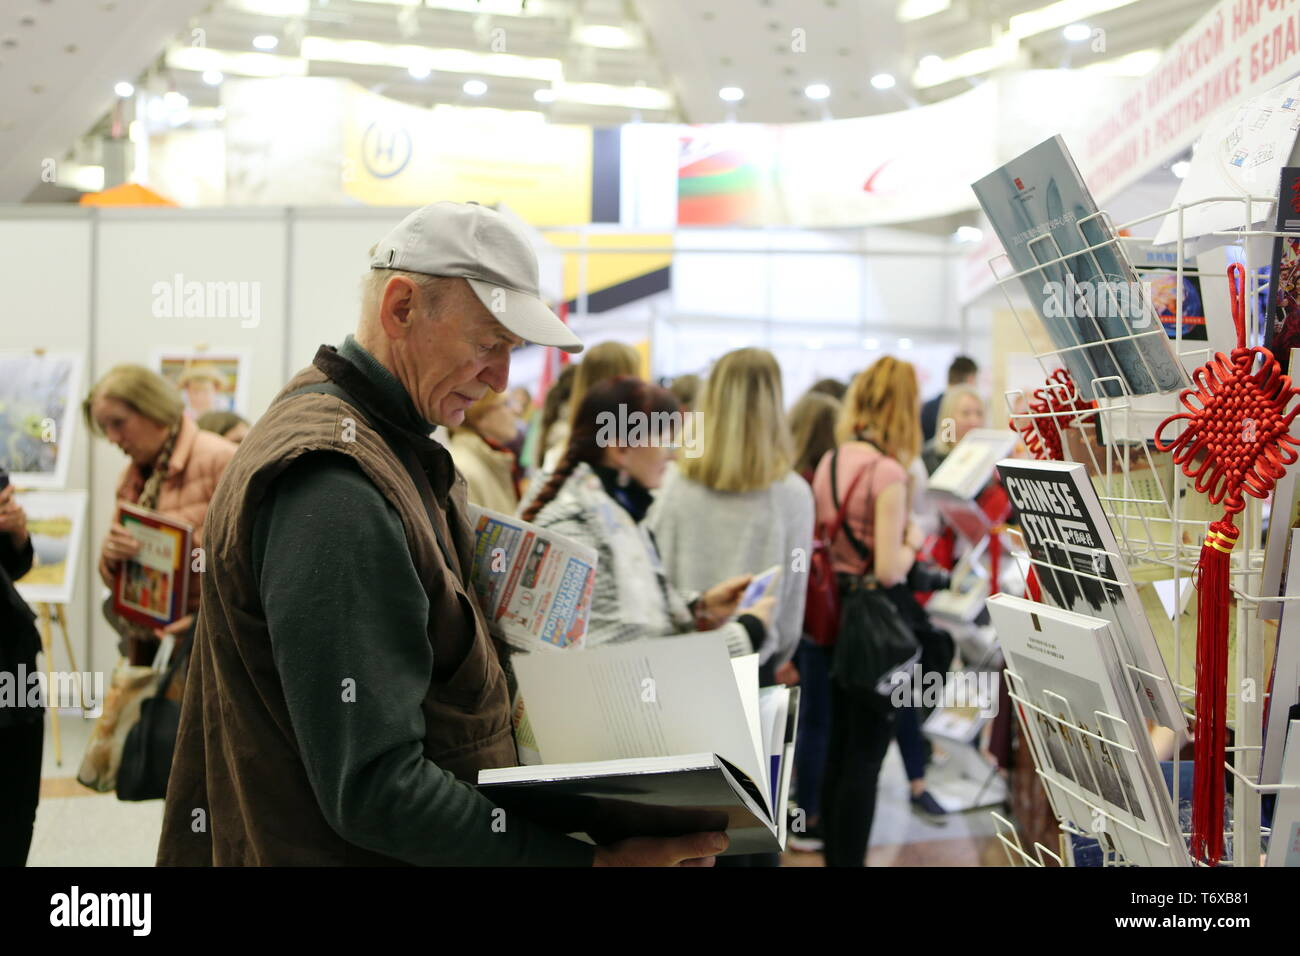 Expo Stand Bielorussia : Demonstration stand of jsc belarusbank at xvii international